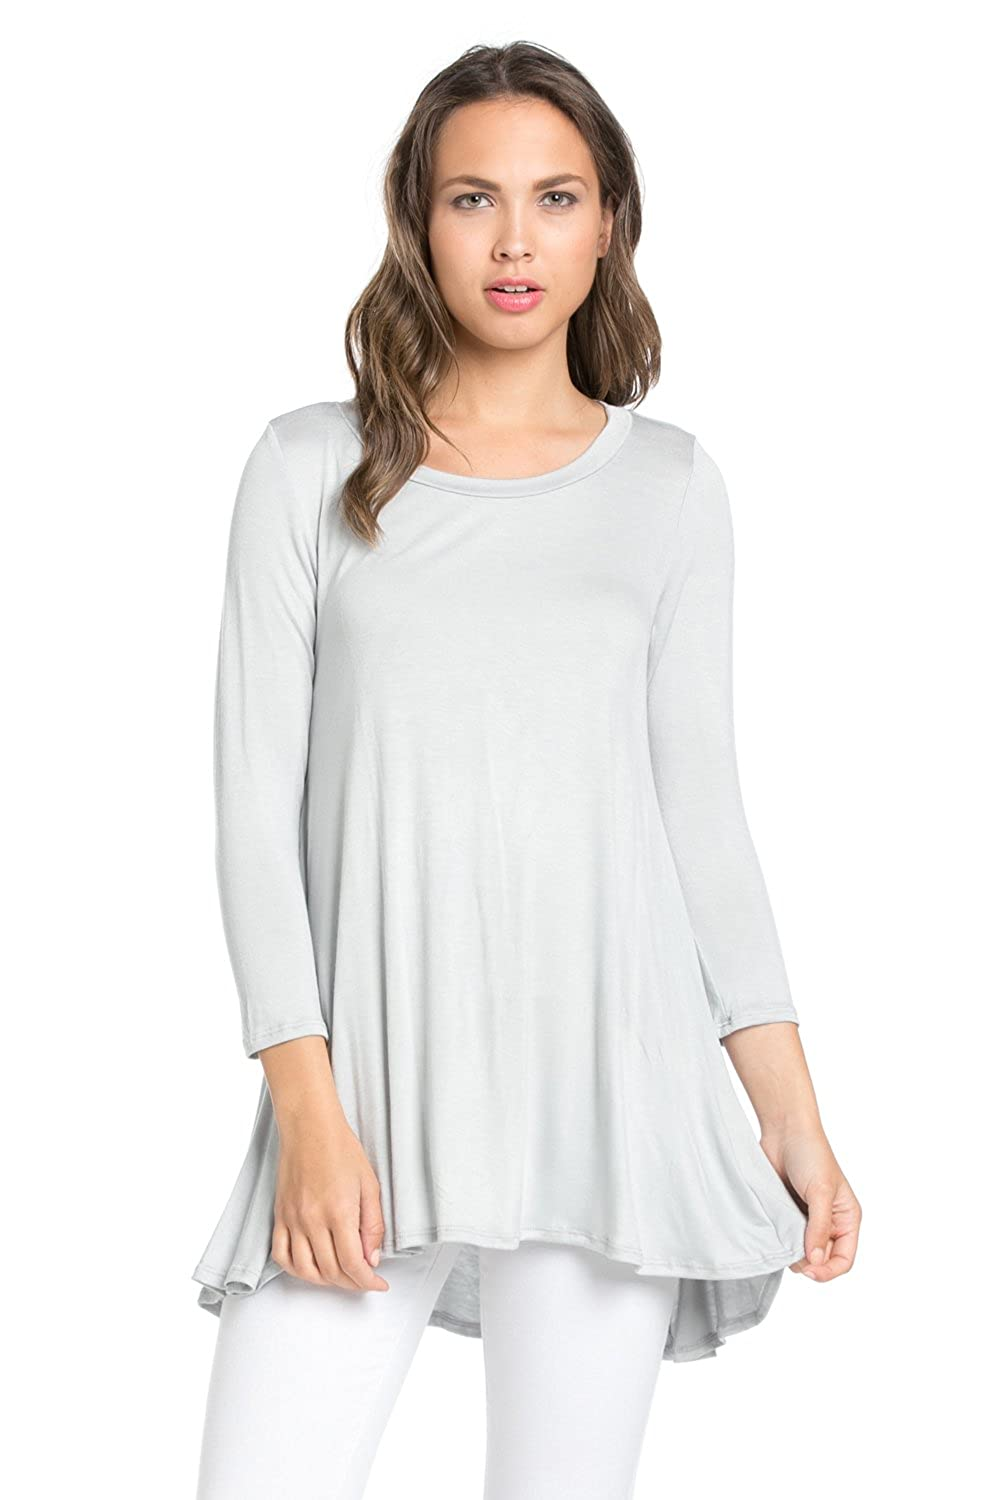 3be6bf8be67 Made in USA This Tunic top for women and girls is perfect for women to wear  leggings. Lightweight soft fabric for a comfortable feminine touch